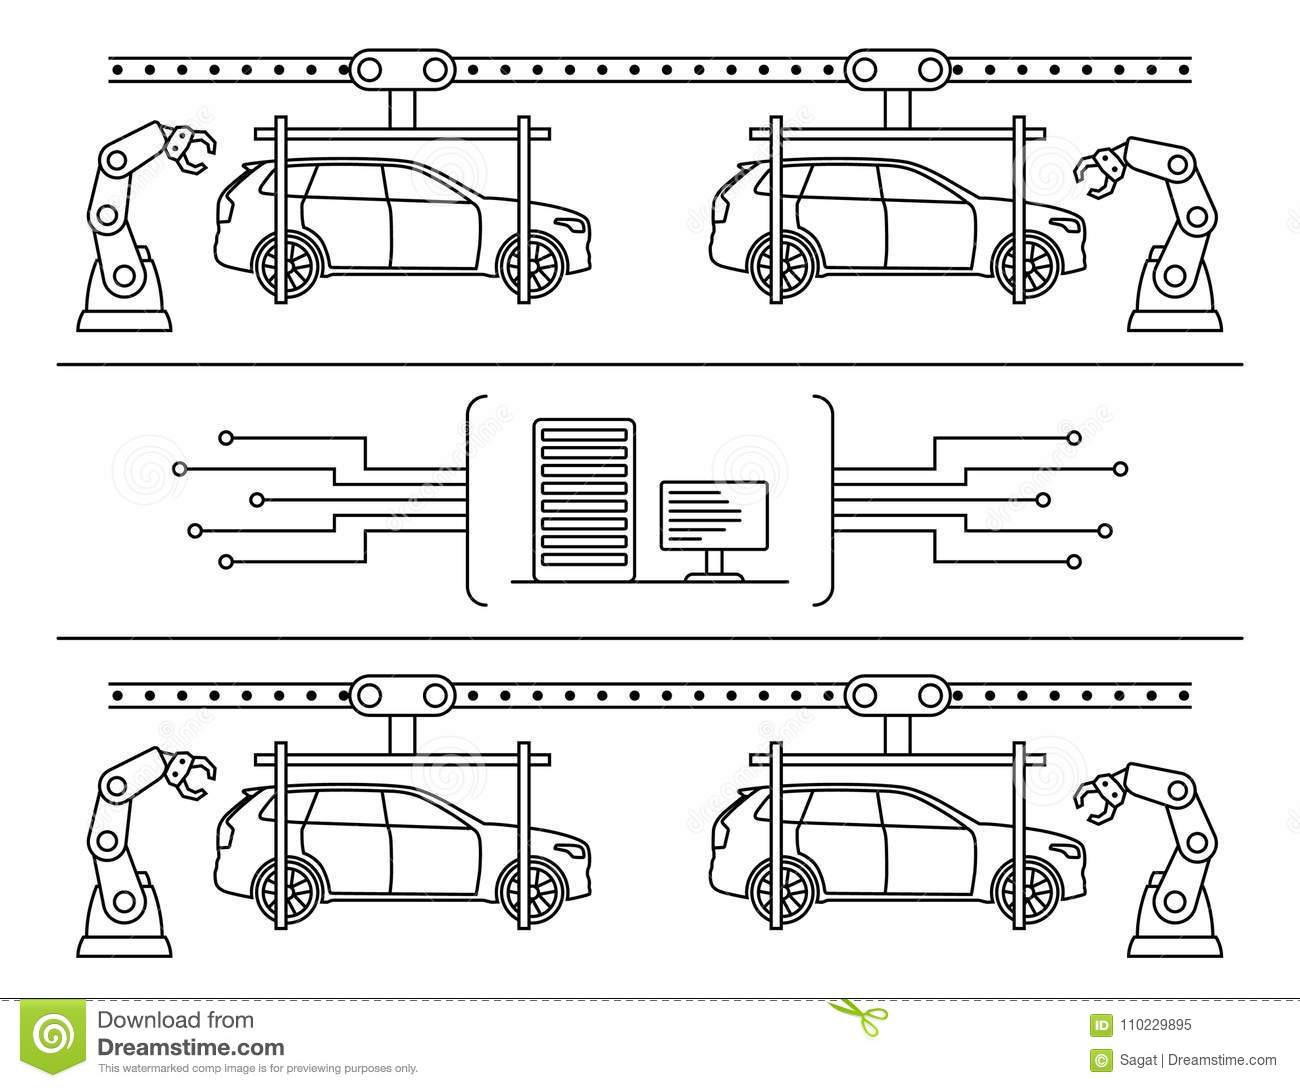 hight resolution of thin line style car assembly line automatic auto production conveyor robotic car machinery industry concept vector illustration